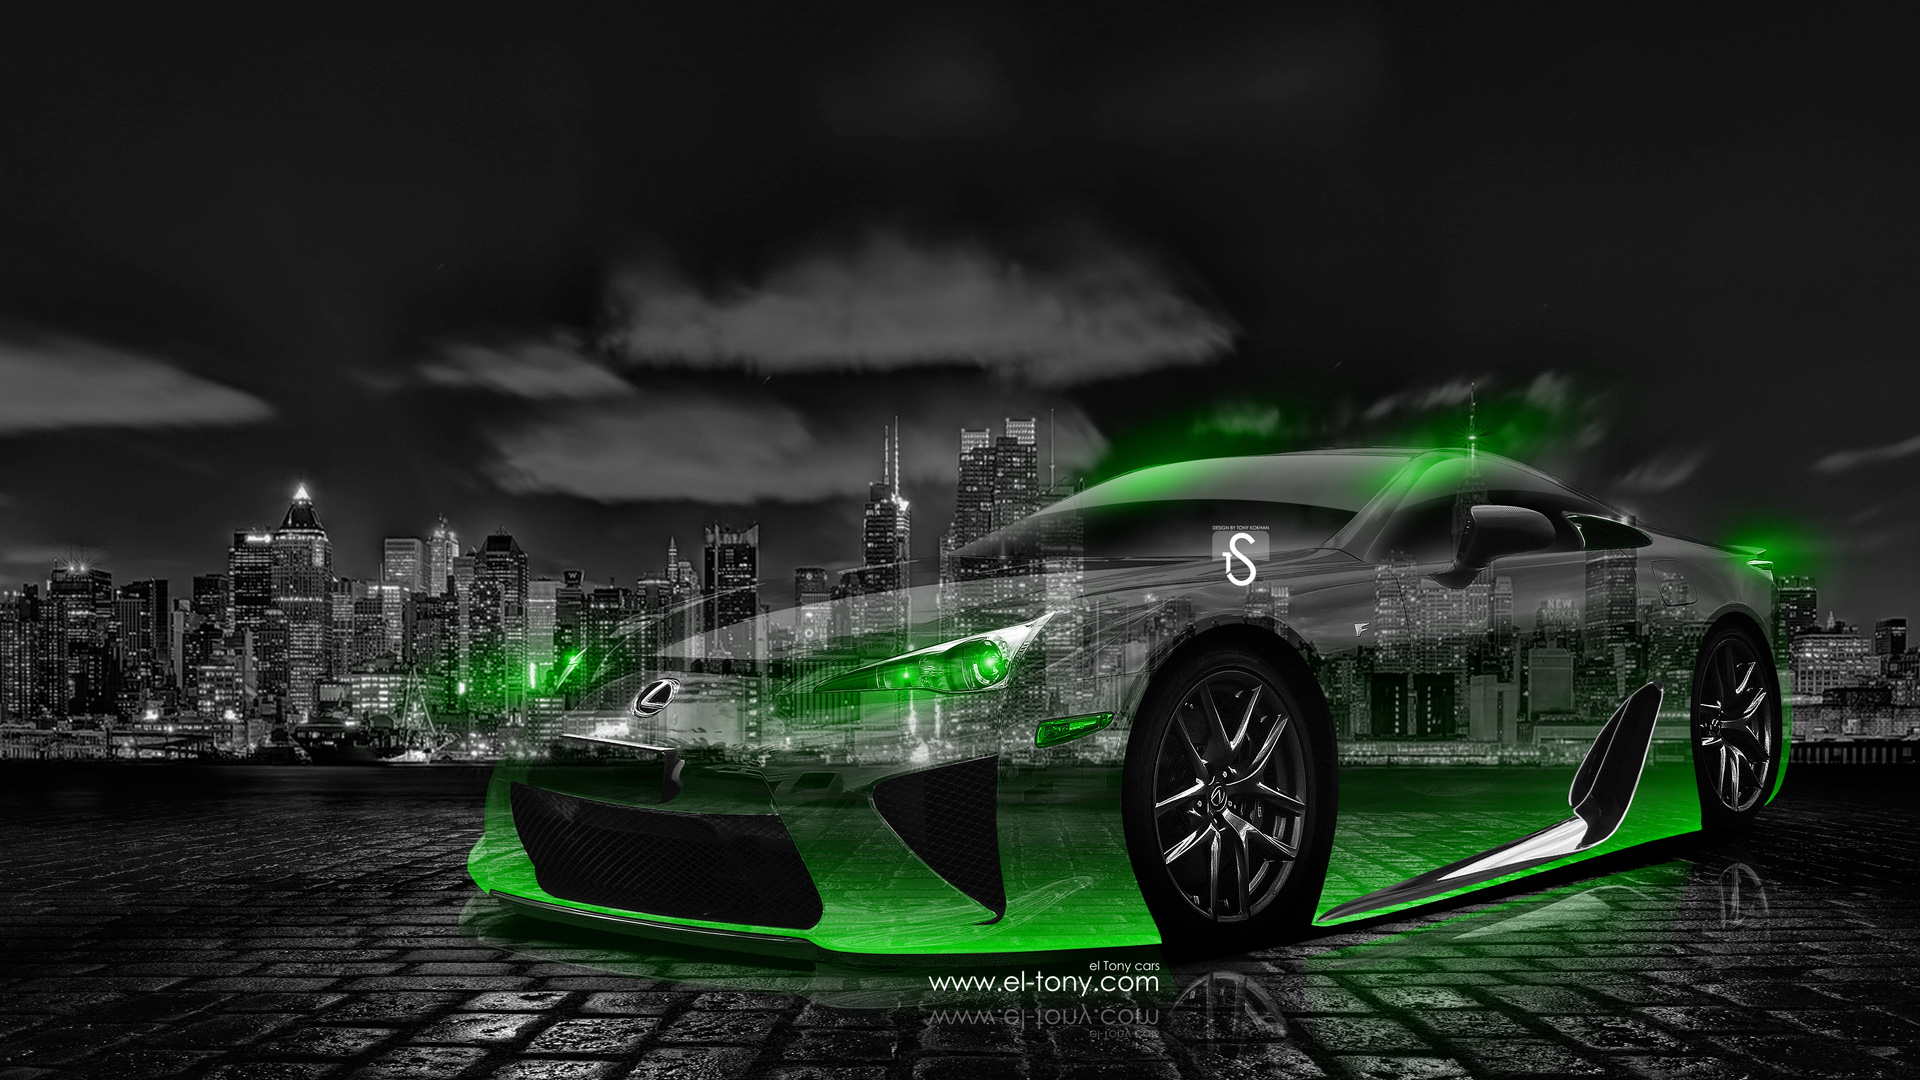 Charmant Lexus LFA Crystal City Car 2014 Green Neon